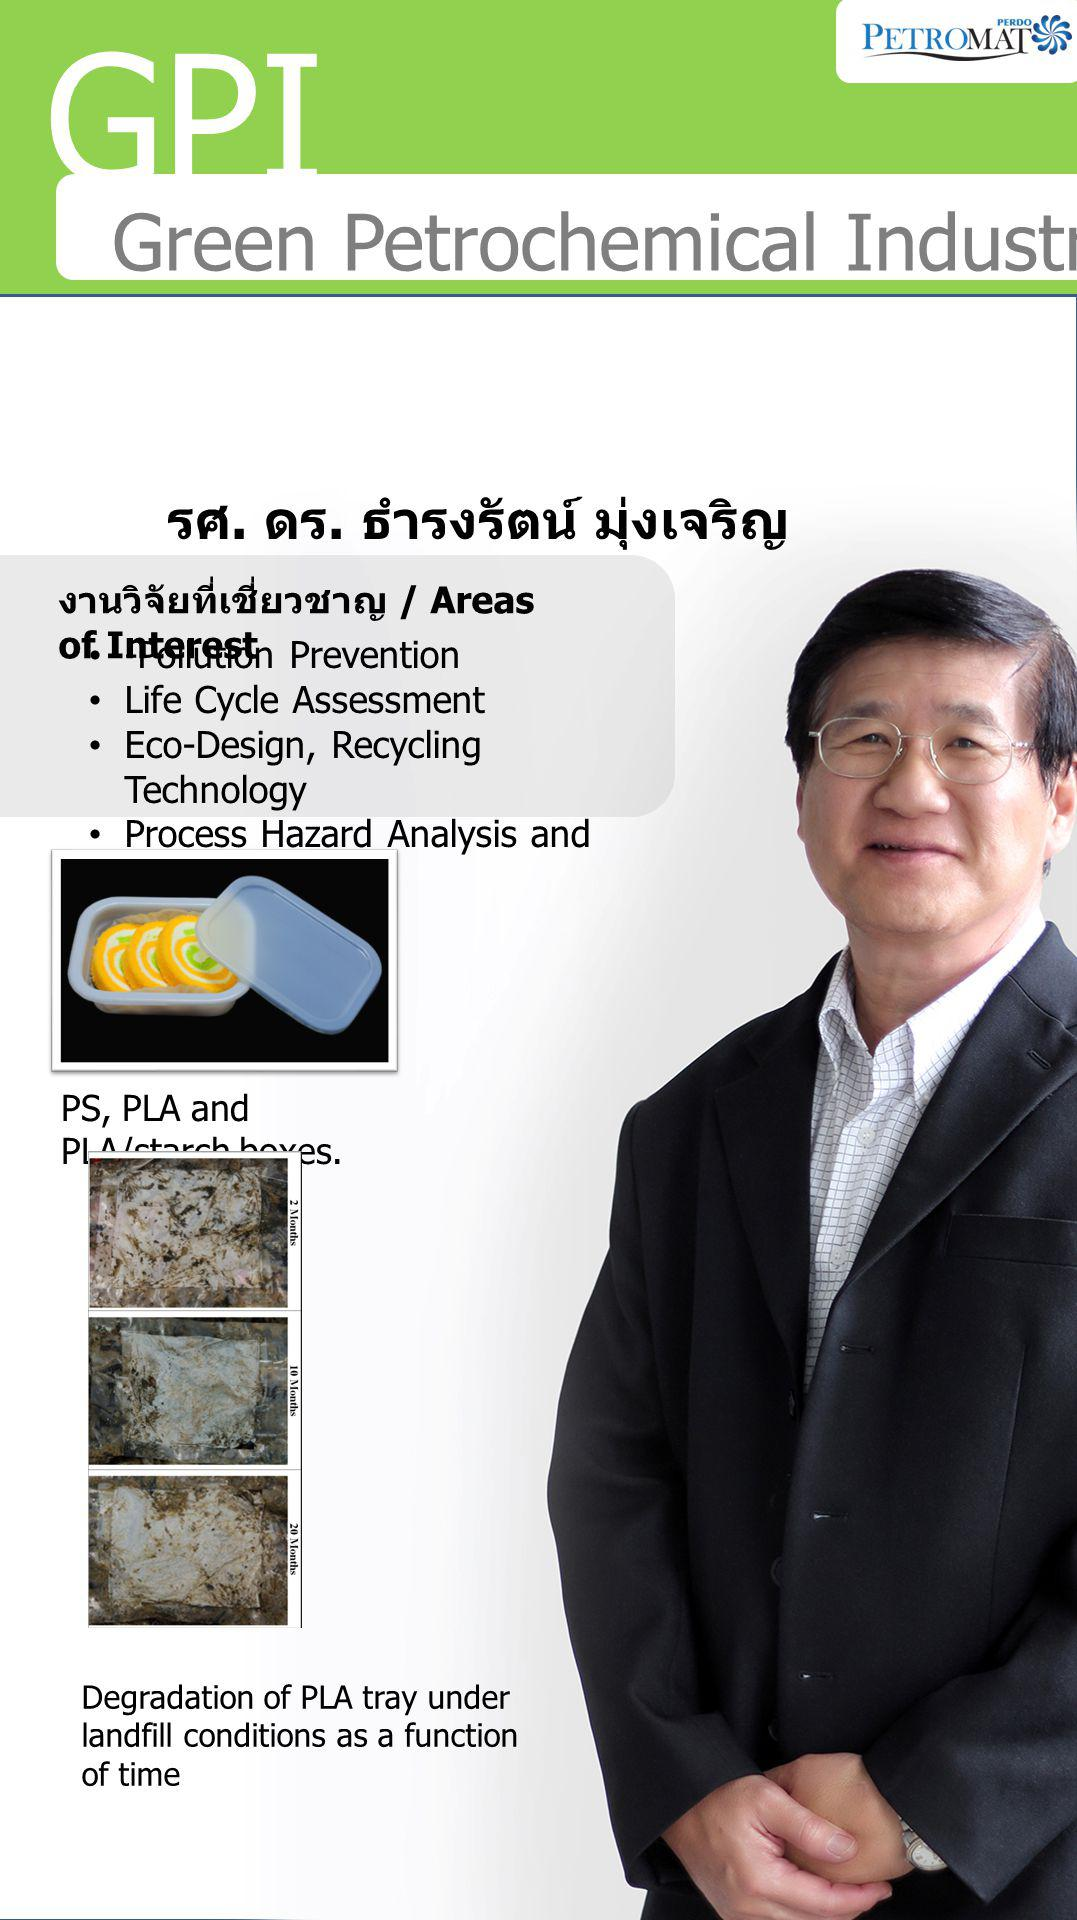 GPI Green Petrochemical Industries รศ. ดร.